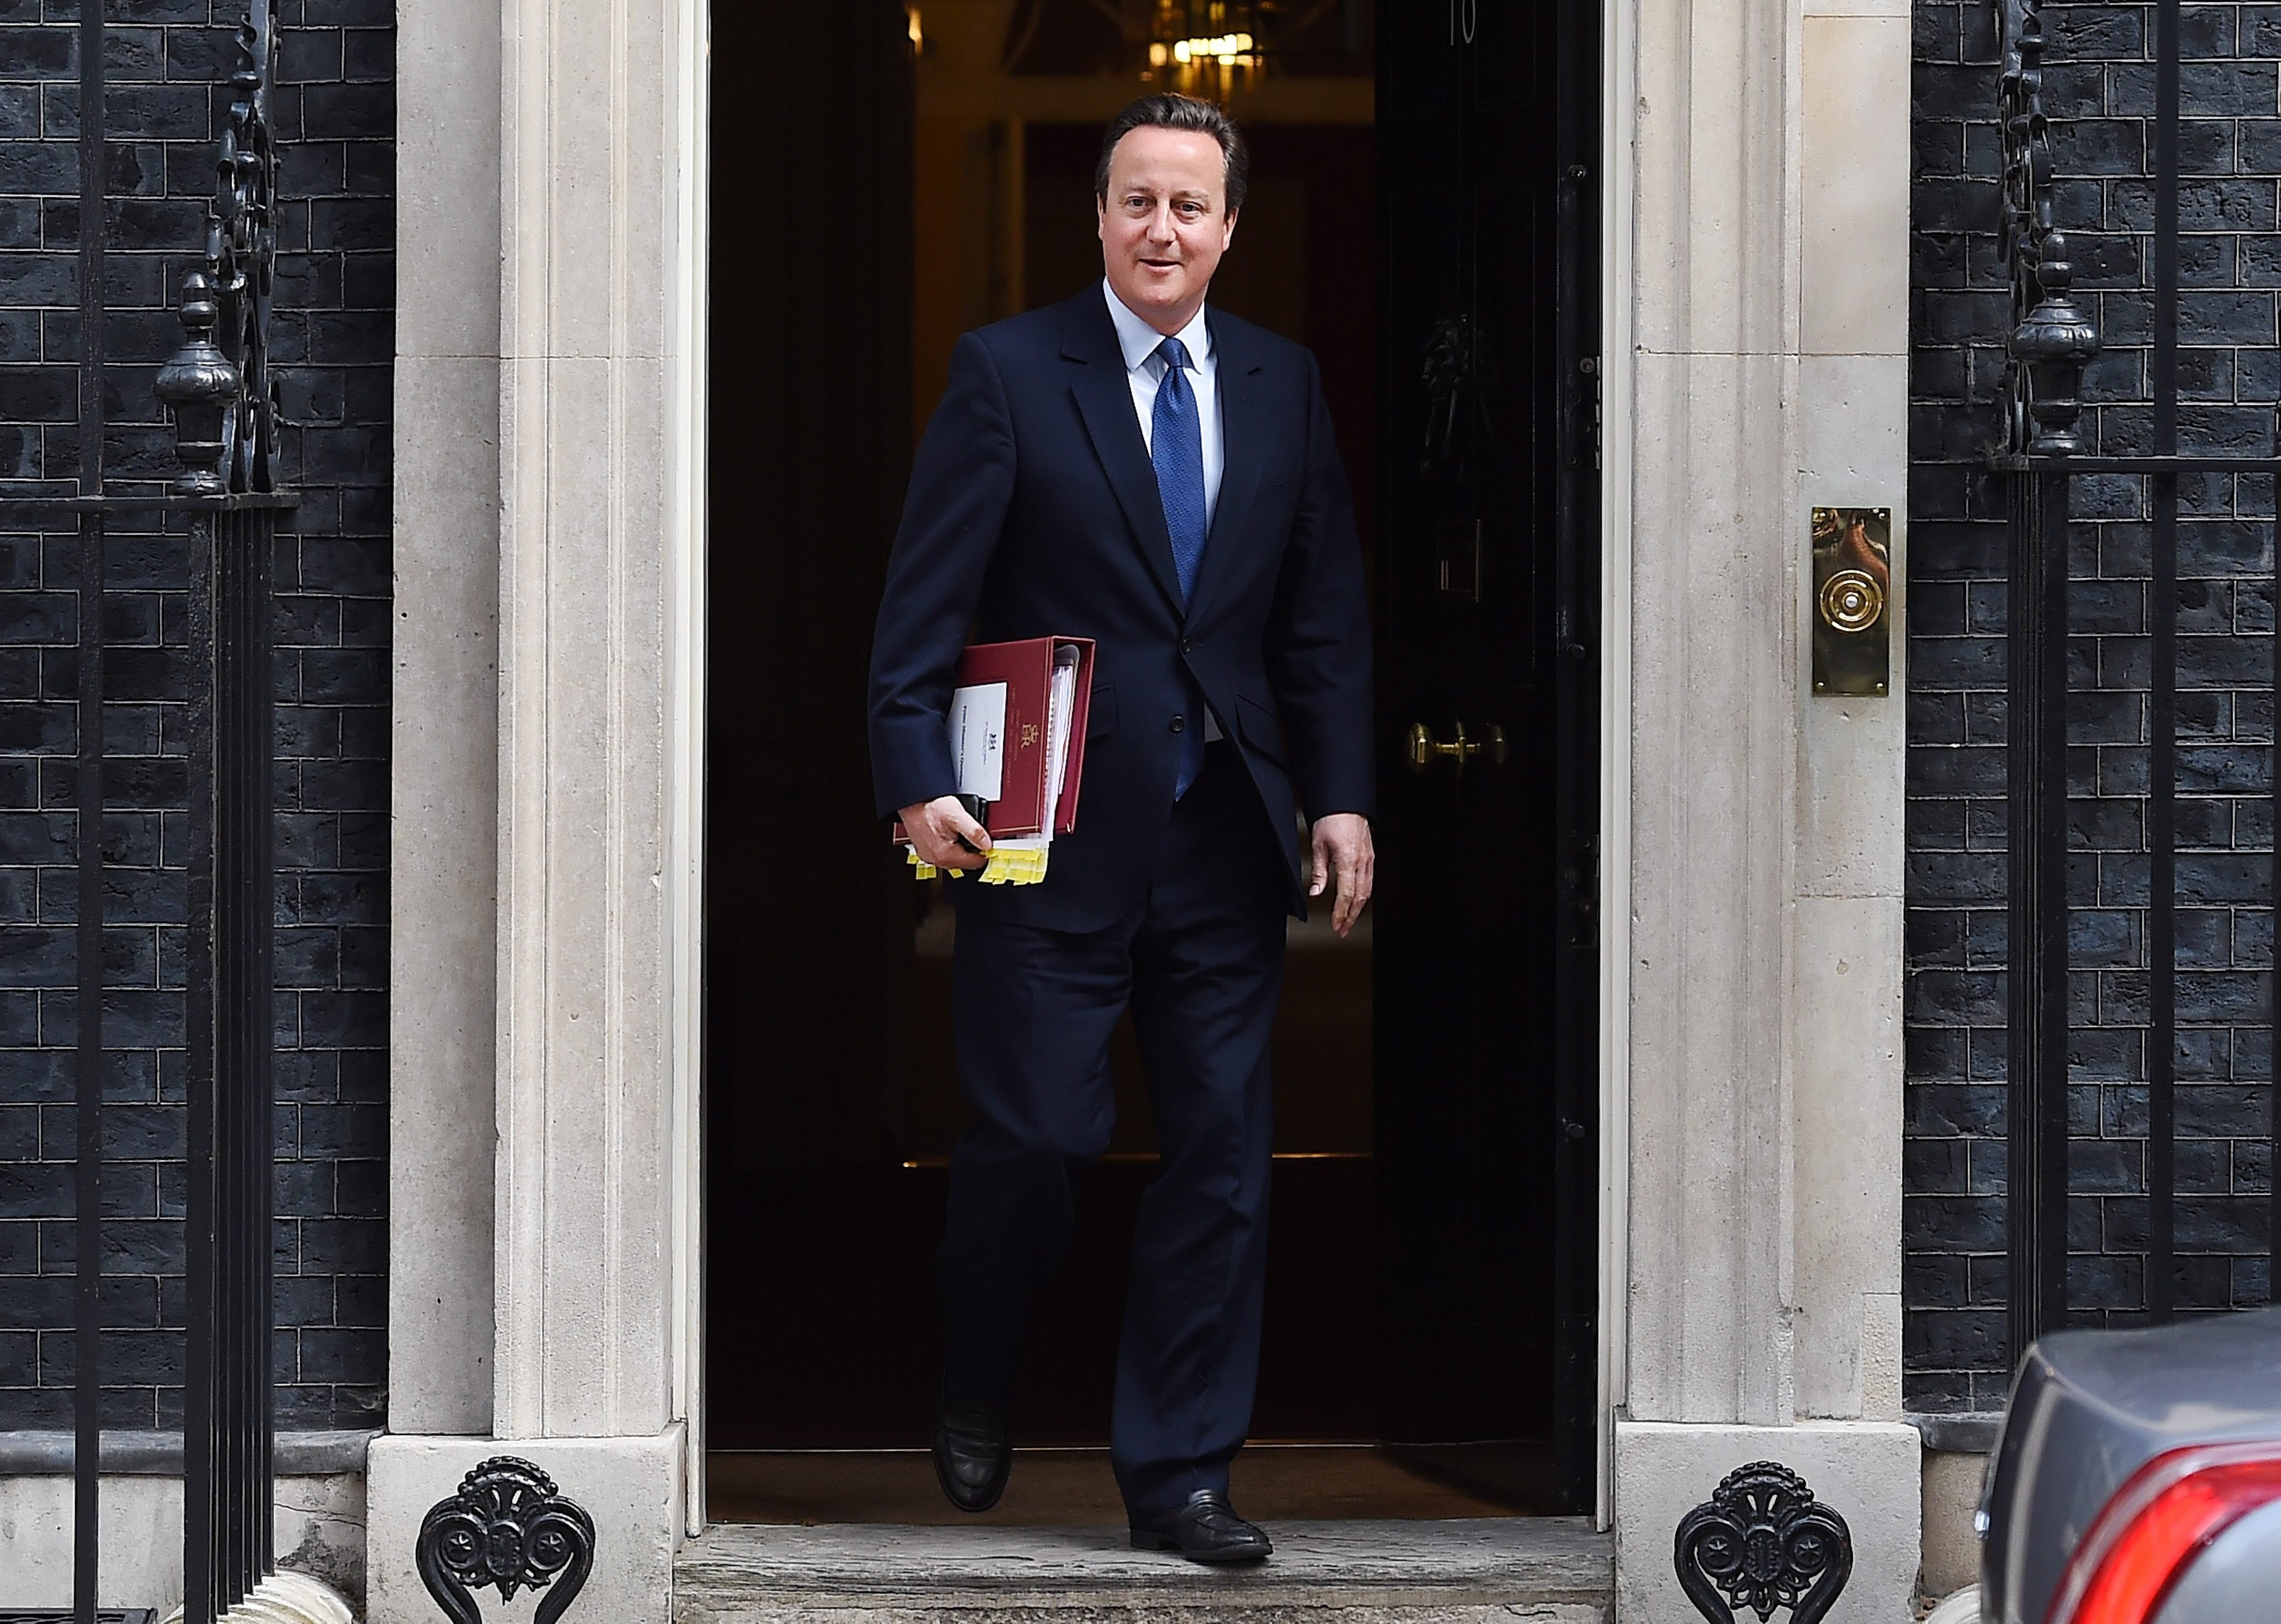 British Prime Minister David Cameron departs 10 Downing Street for his last Prime Minister's Questions in the House of Commons, Westminister, London on July 13, 2016.